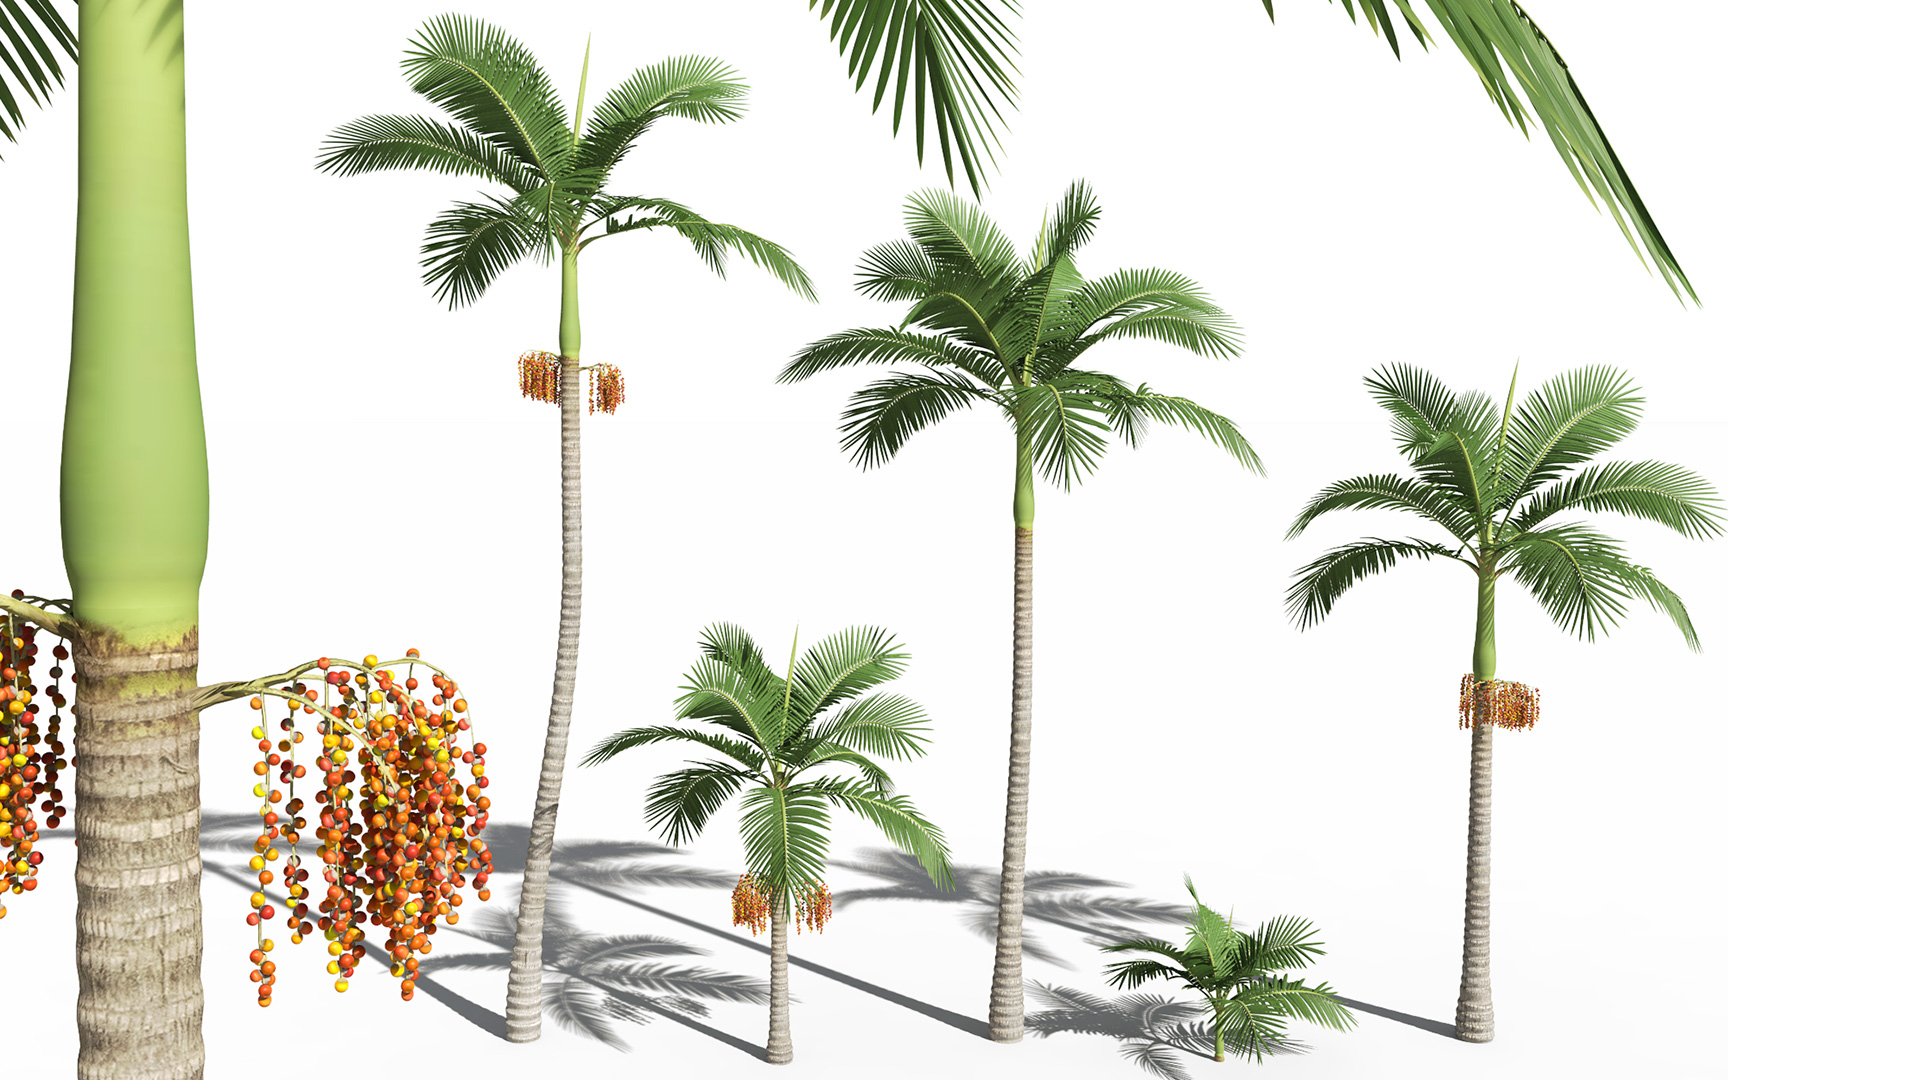 3D model of the Alexander palm Archontophoenix alexandrae different presets